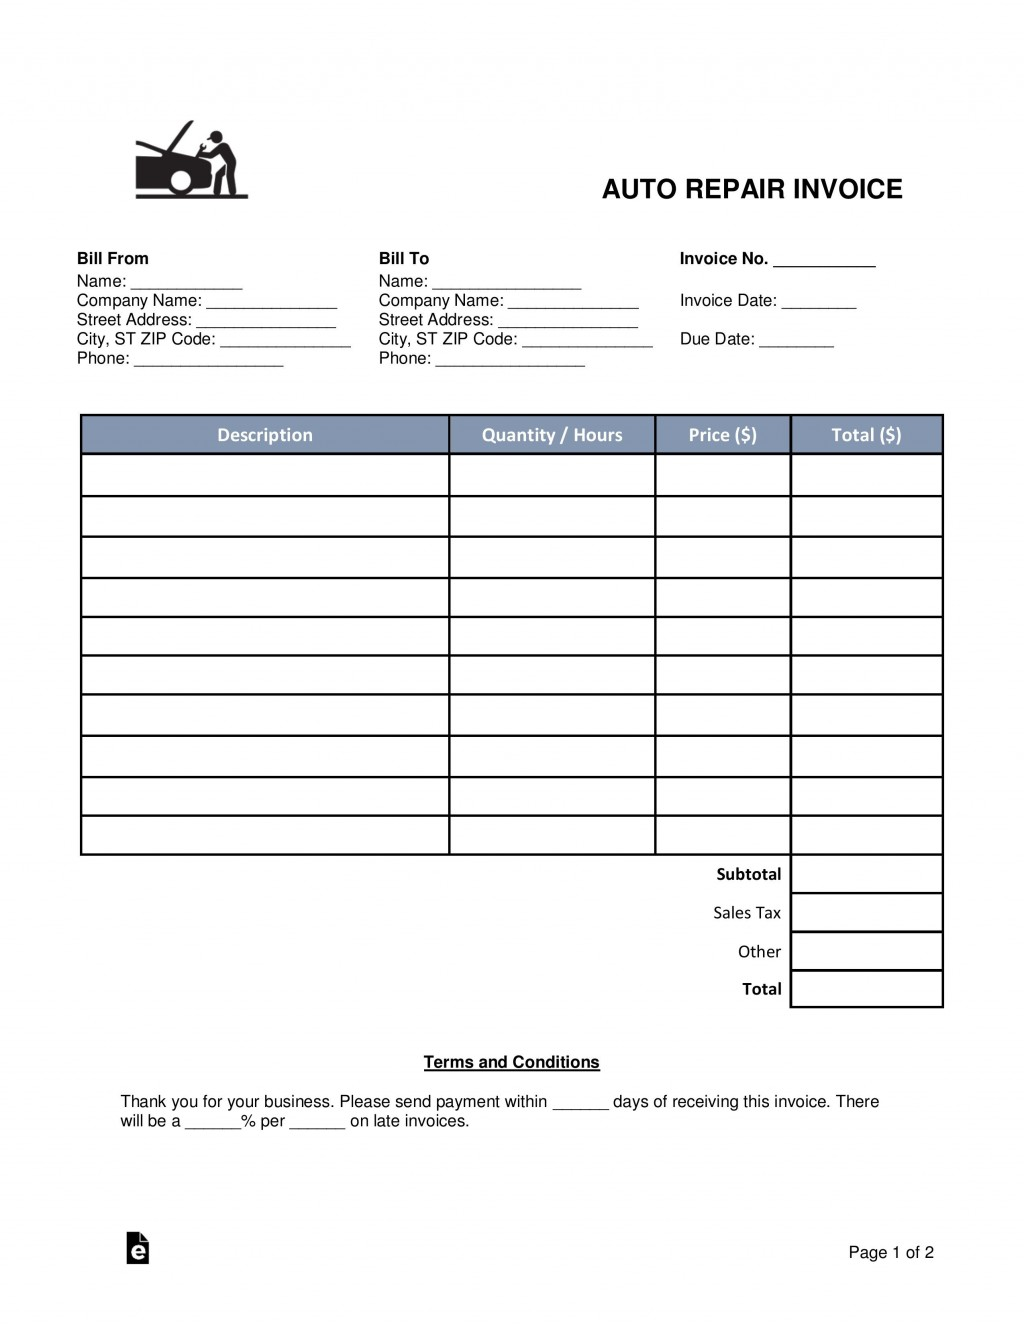 003 Fearsome Microsoft Word Auto Repair Invoice Template High Definition Large